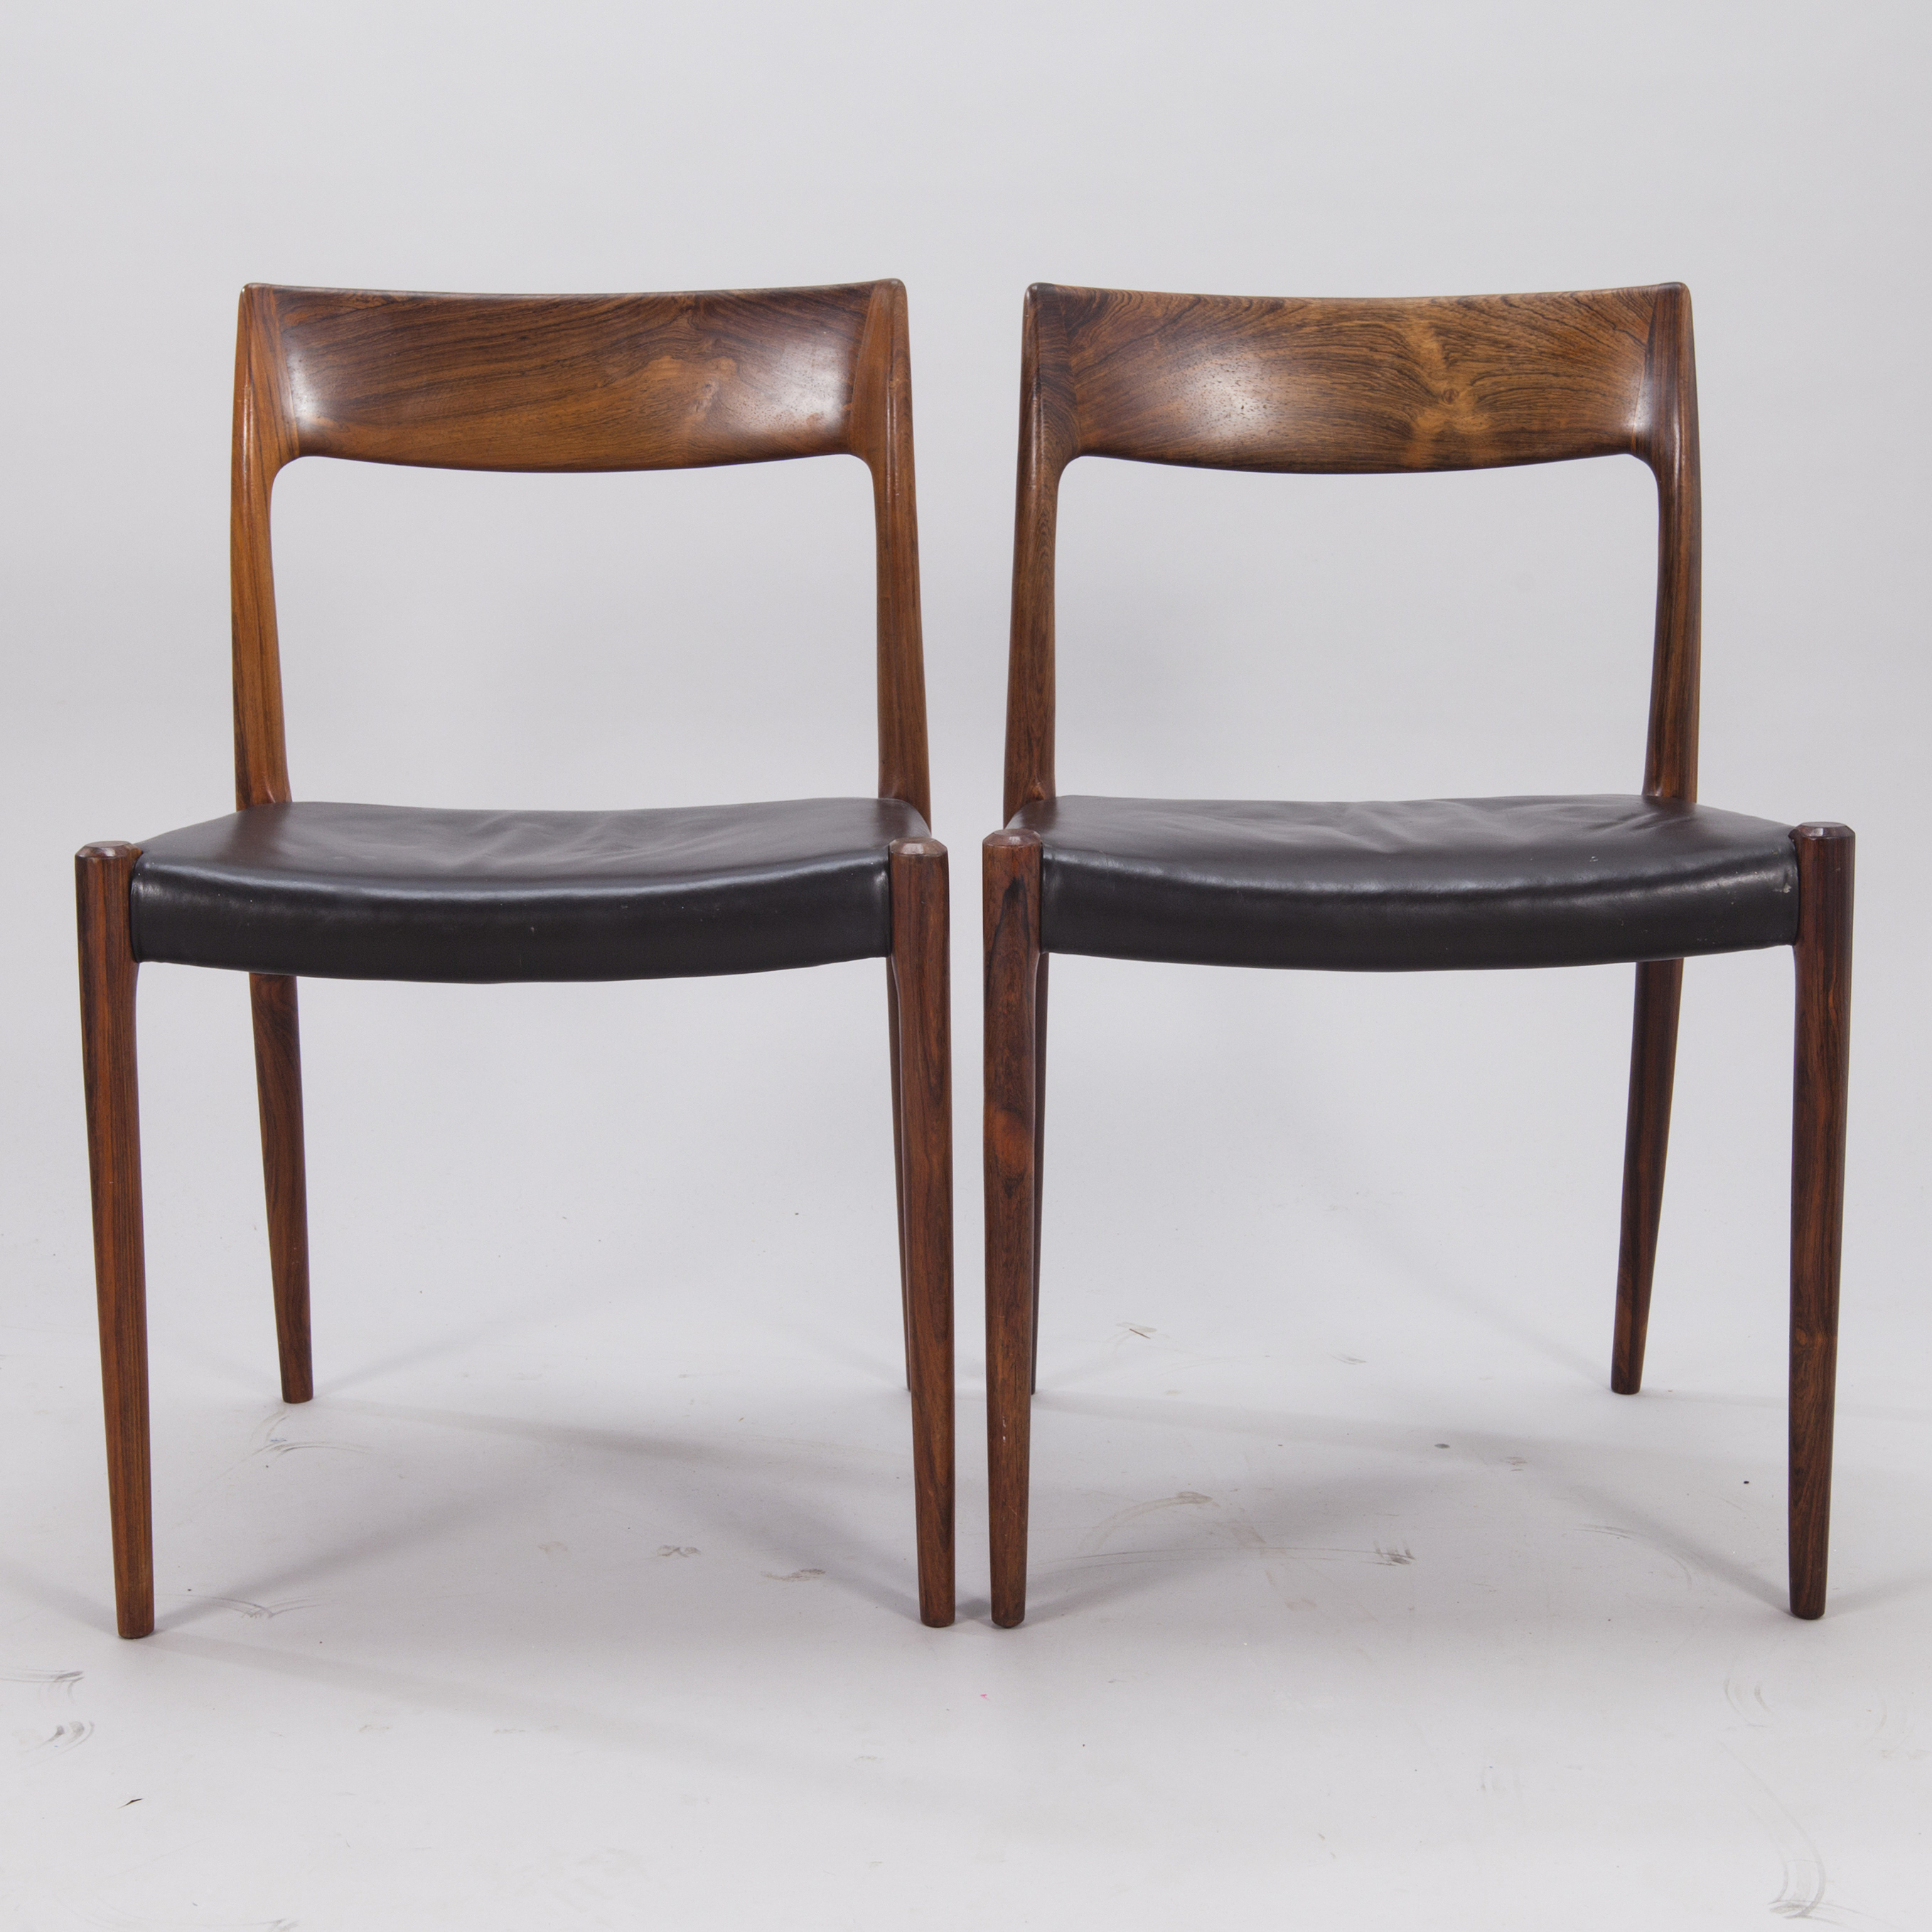 Frisk A SET OF 6 CHAIRS, model 77, by Niels O. Møller, J.L. Møllers EY-72